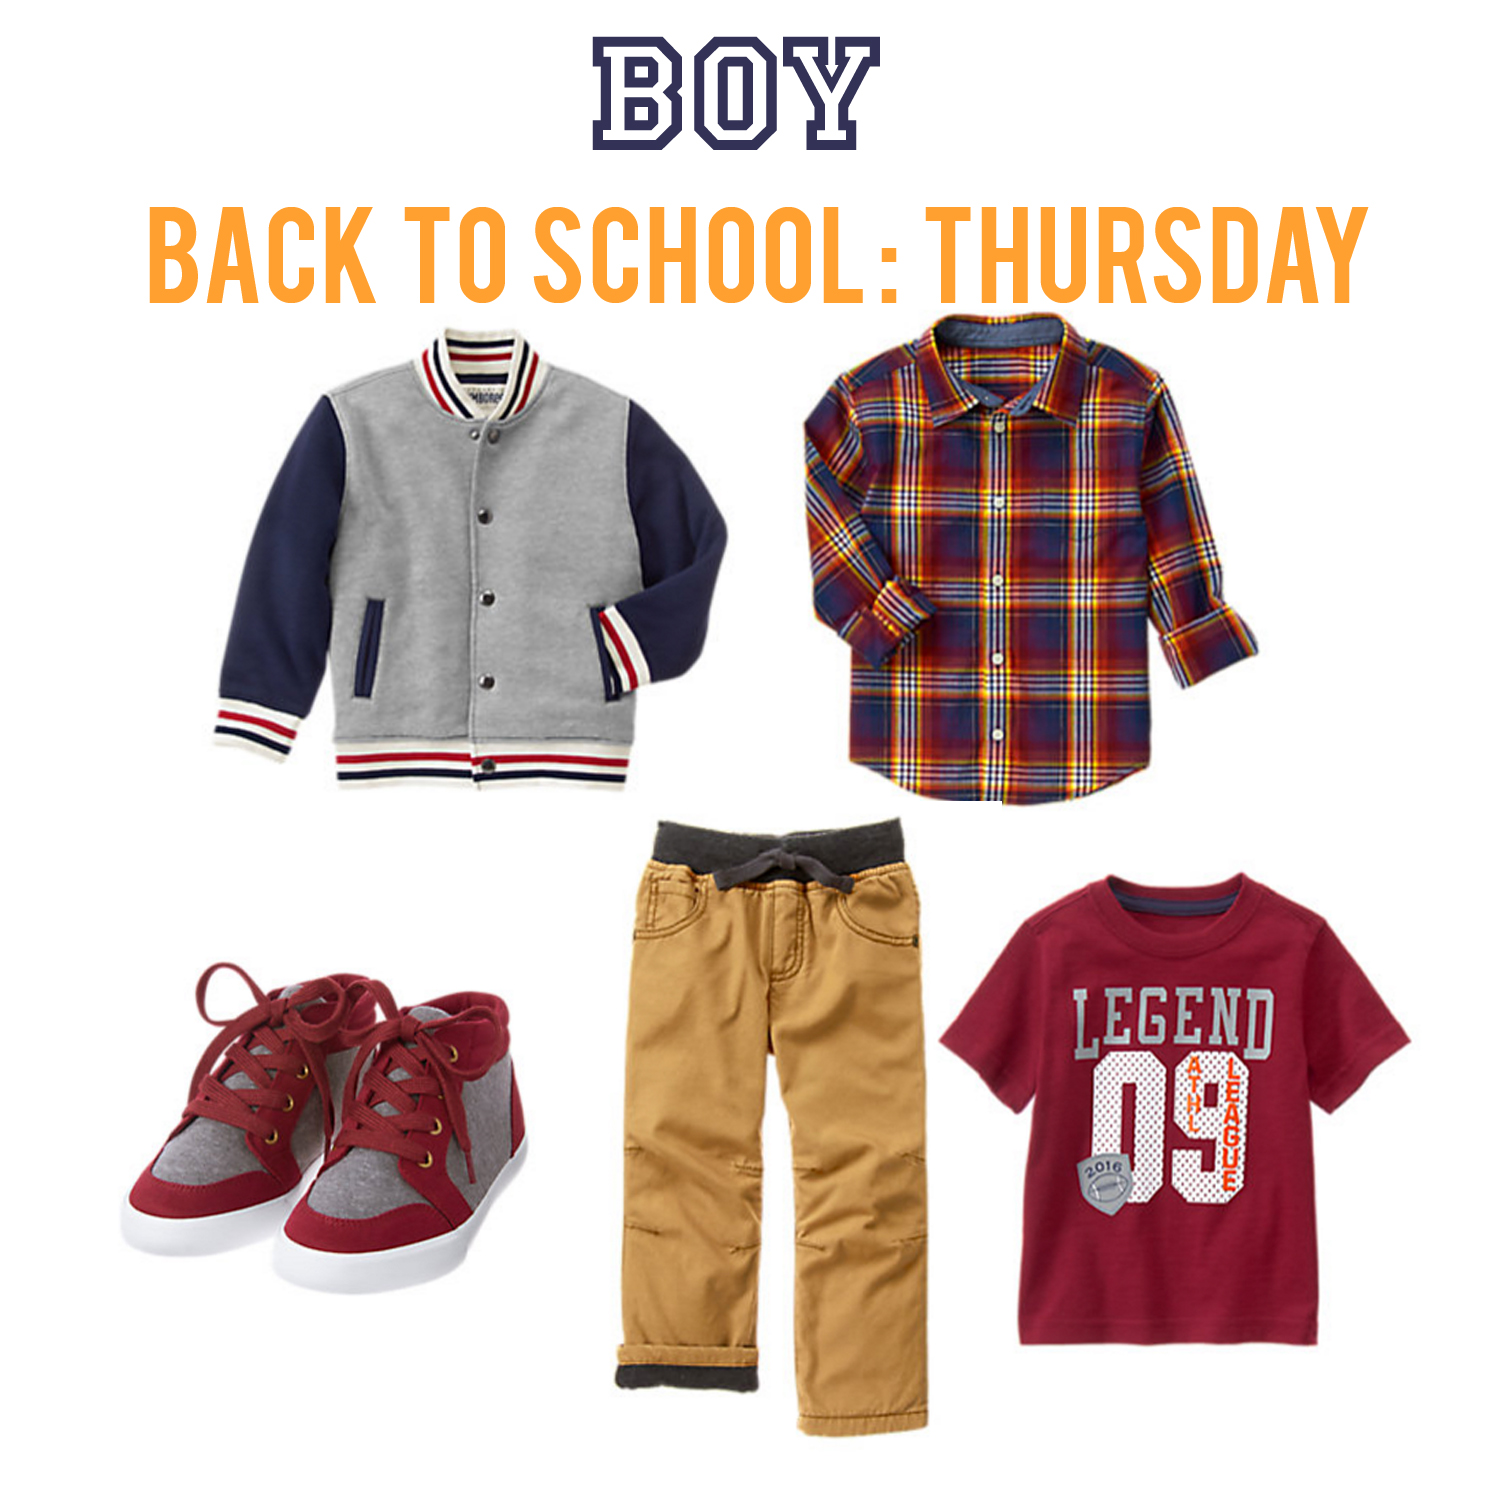 gym boy thursday